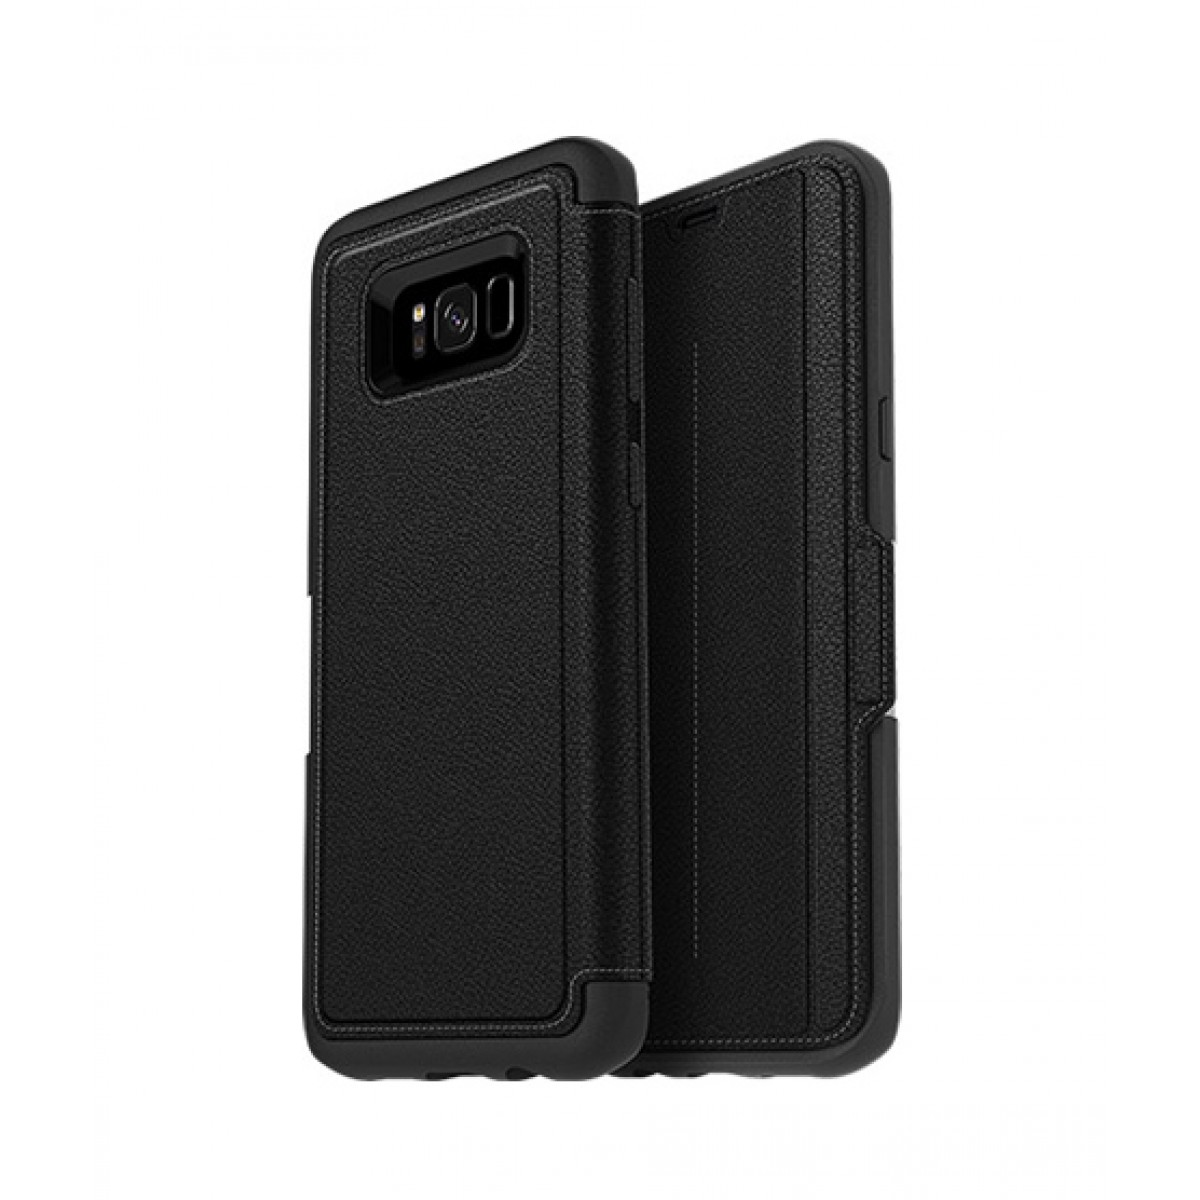 promo code 11301 d5d07 OtterBox Strada Series Leather Folio Onyx Case For Galaxy S8+